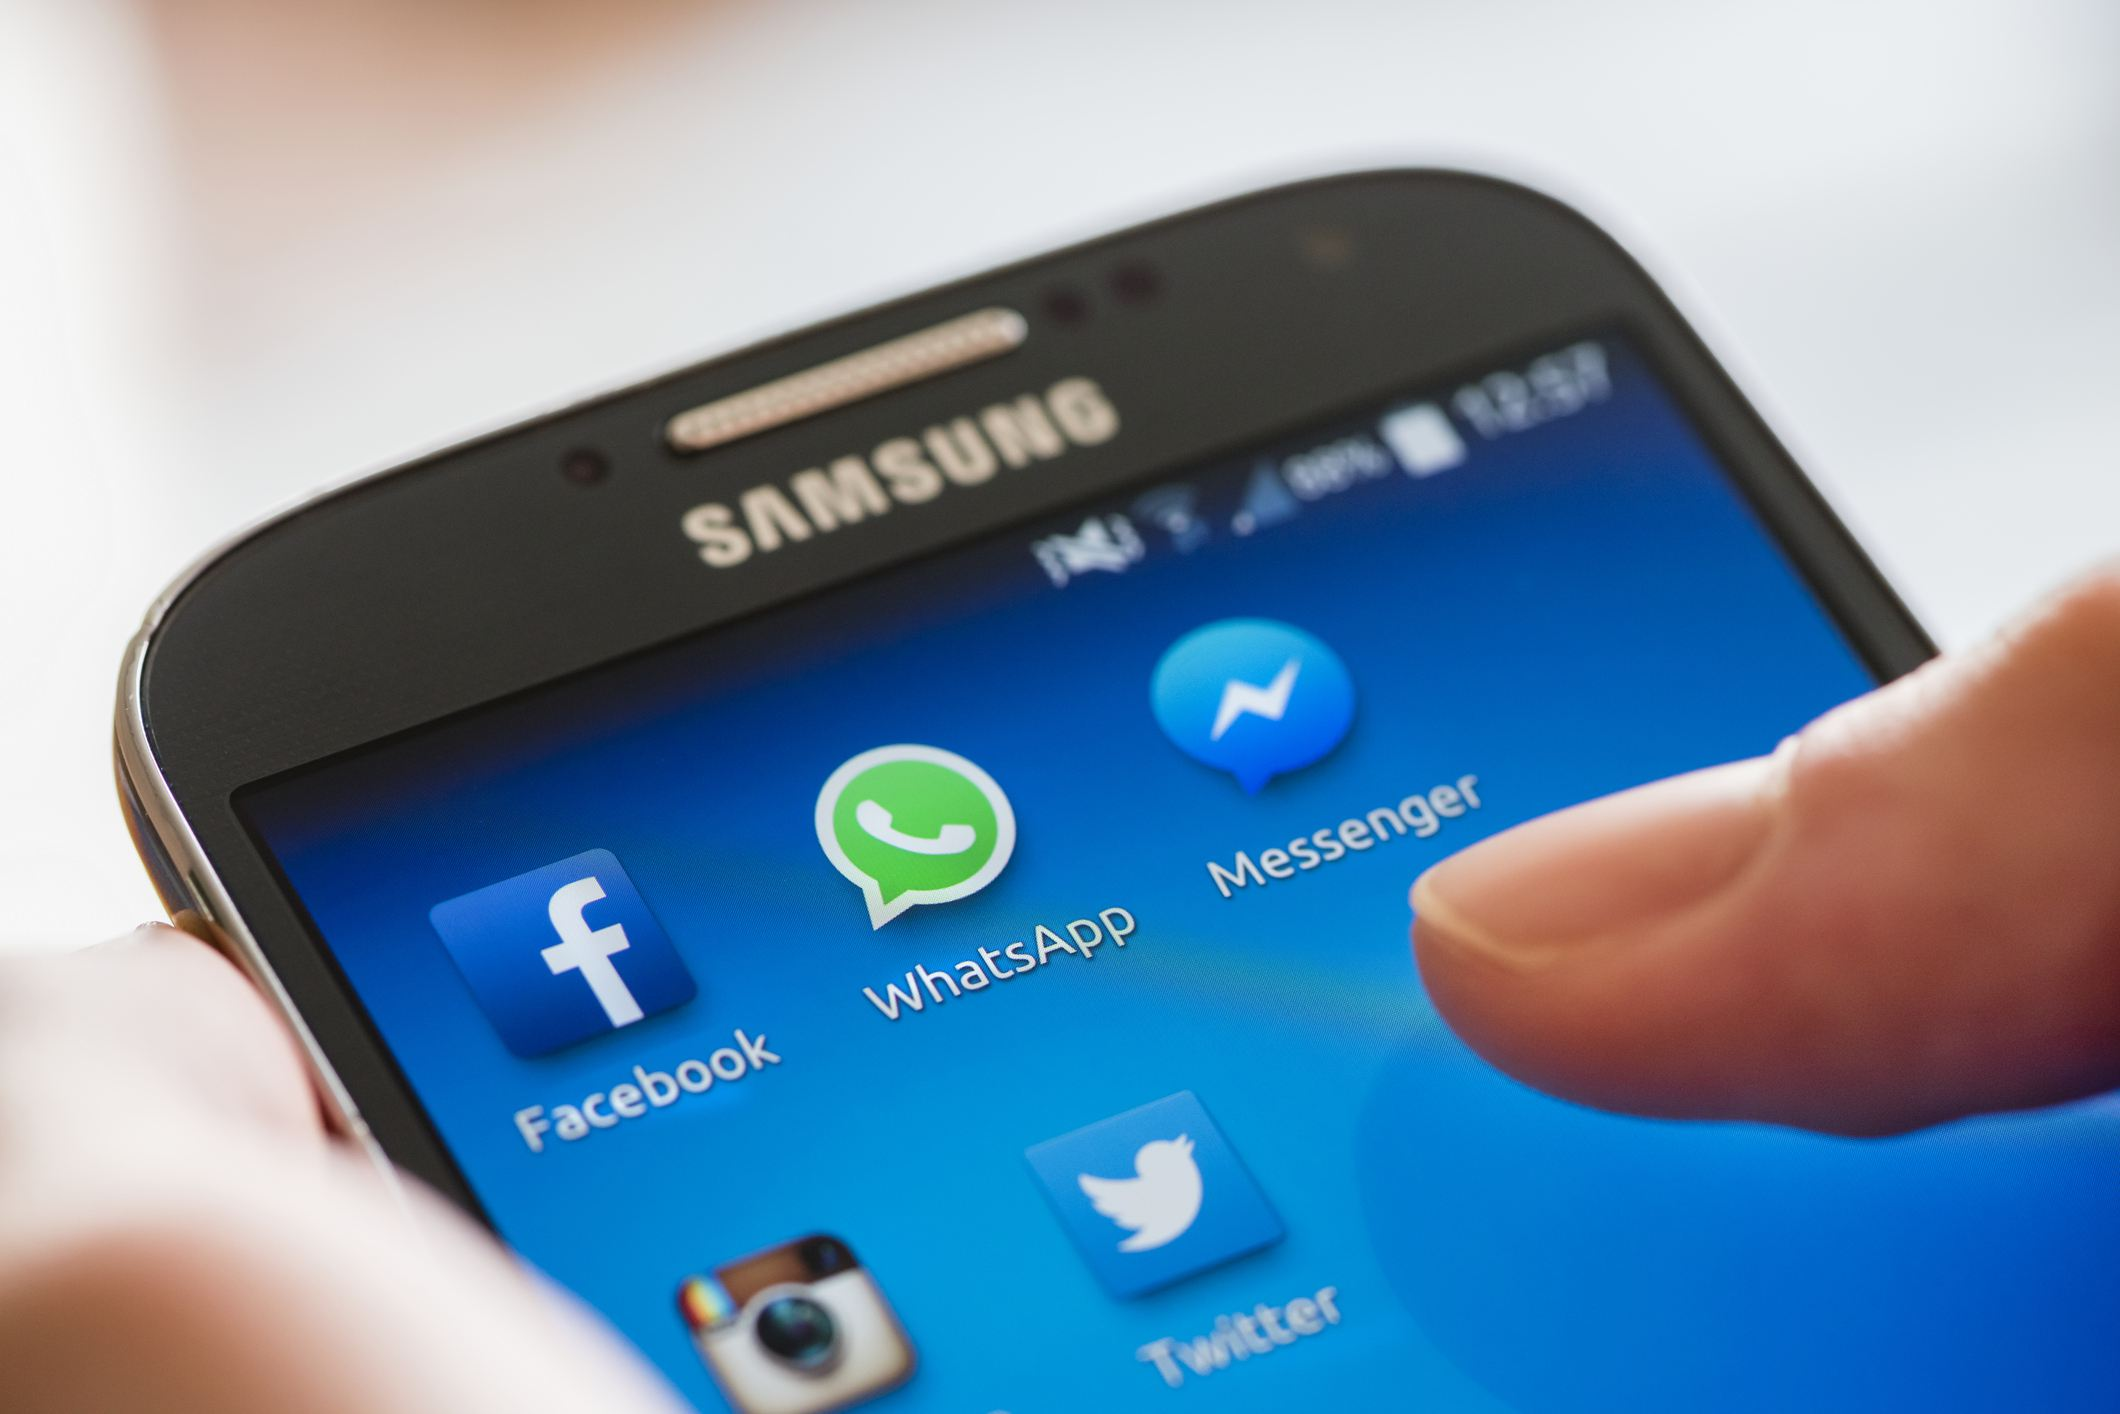 View of a smartphone's social media apps